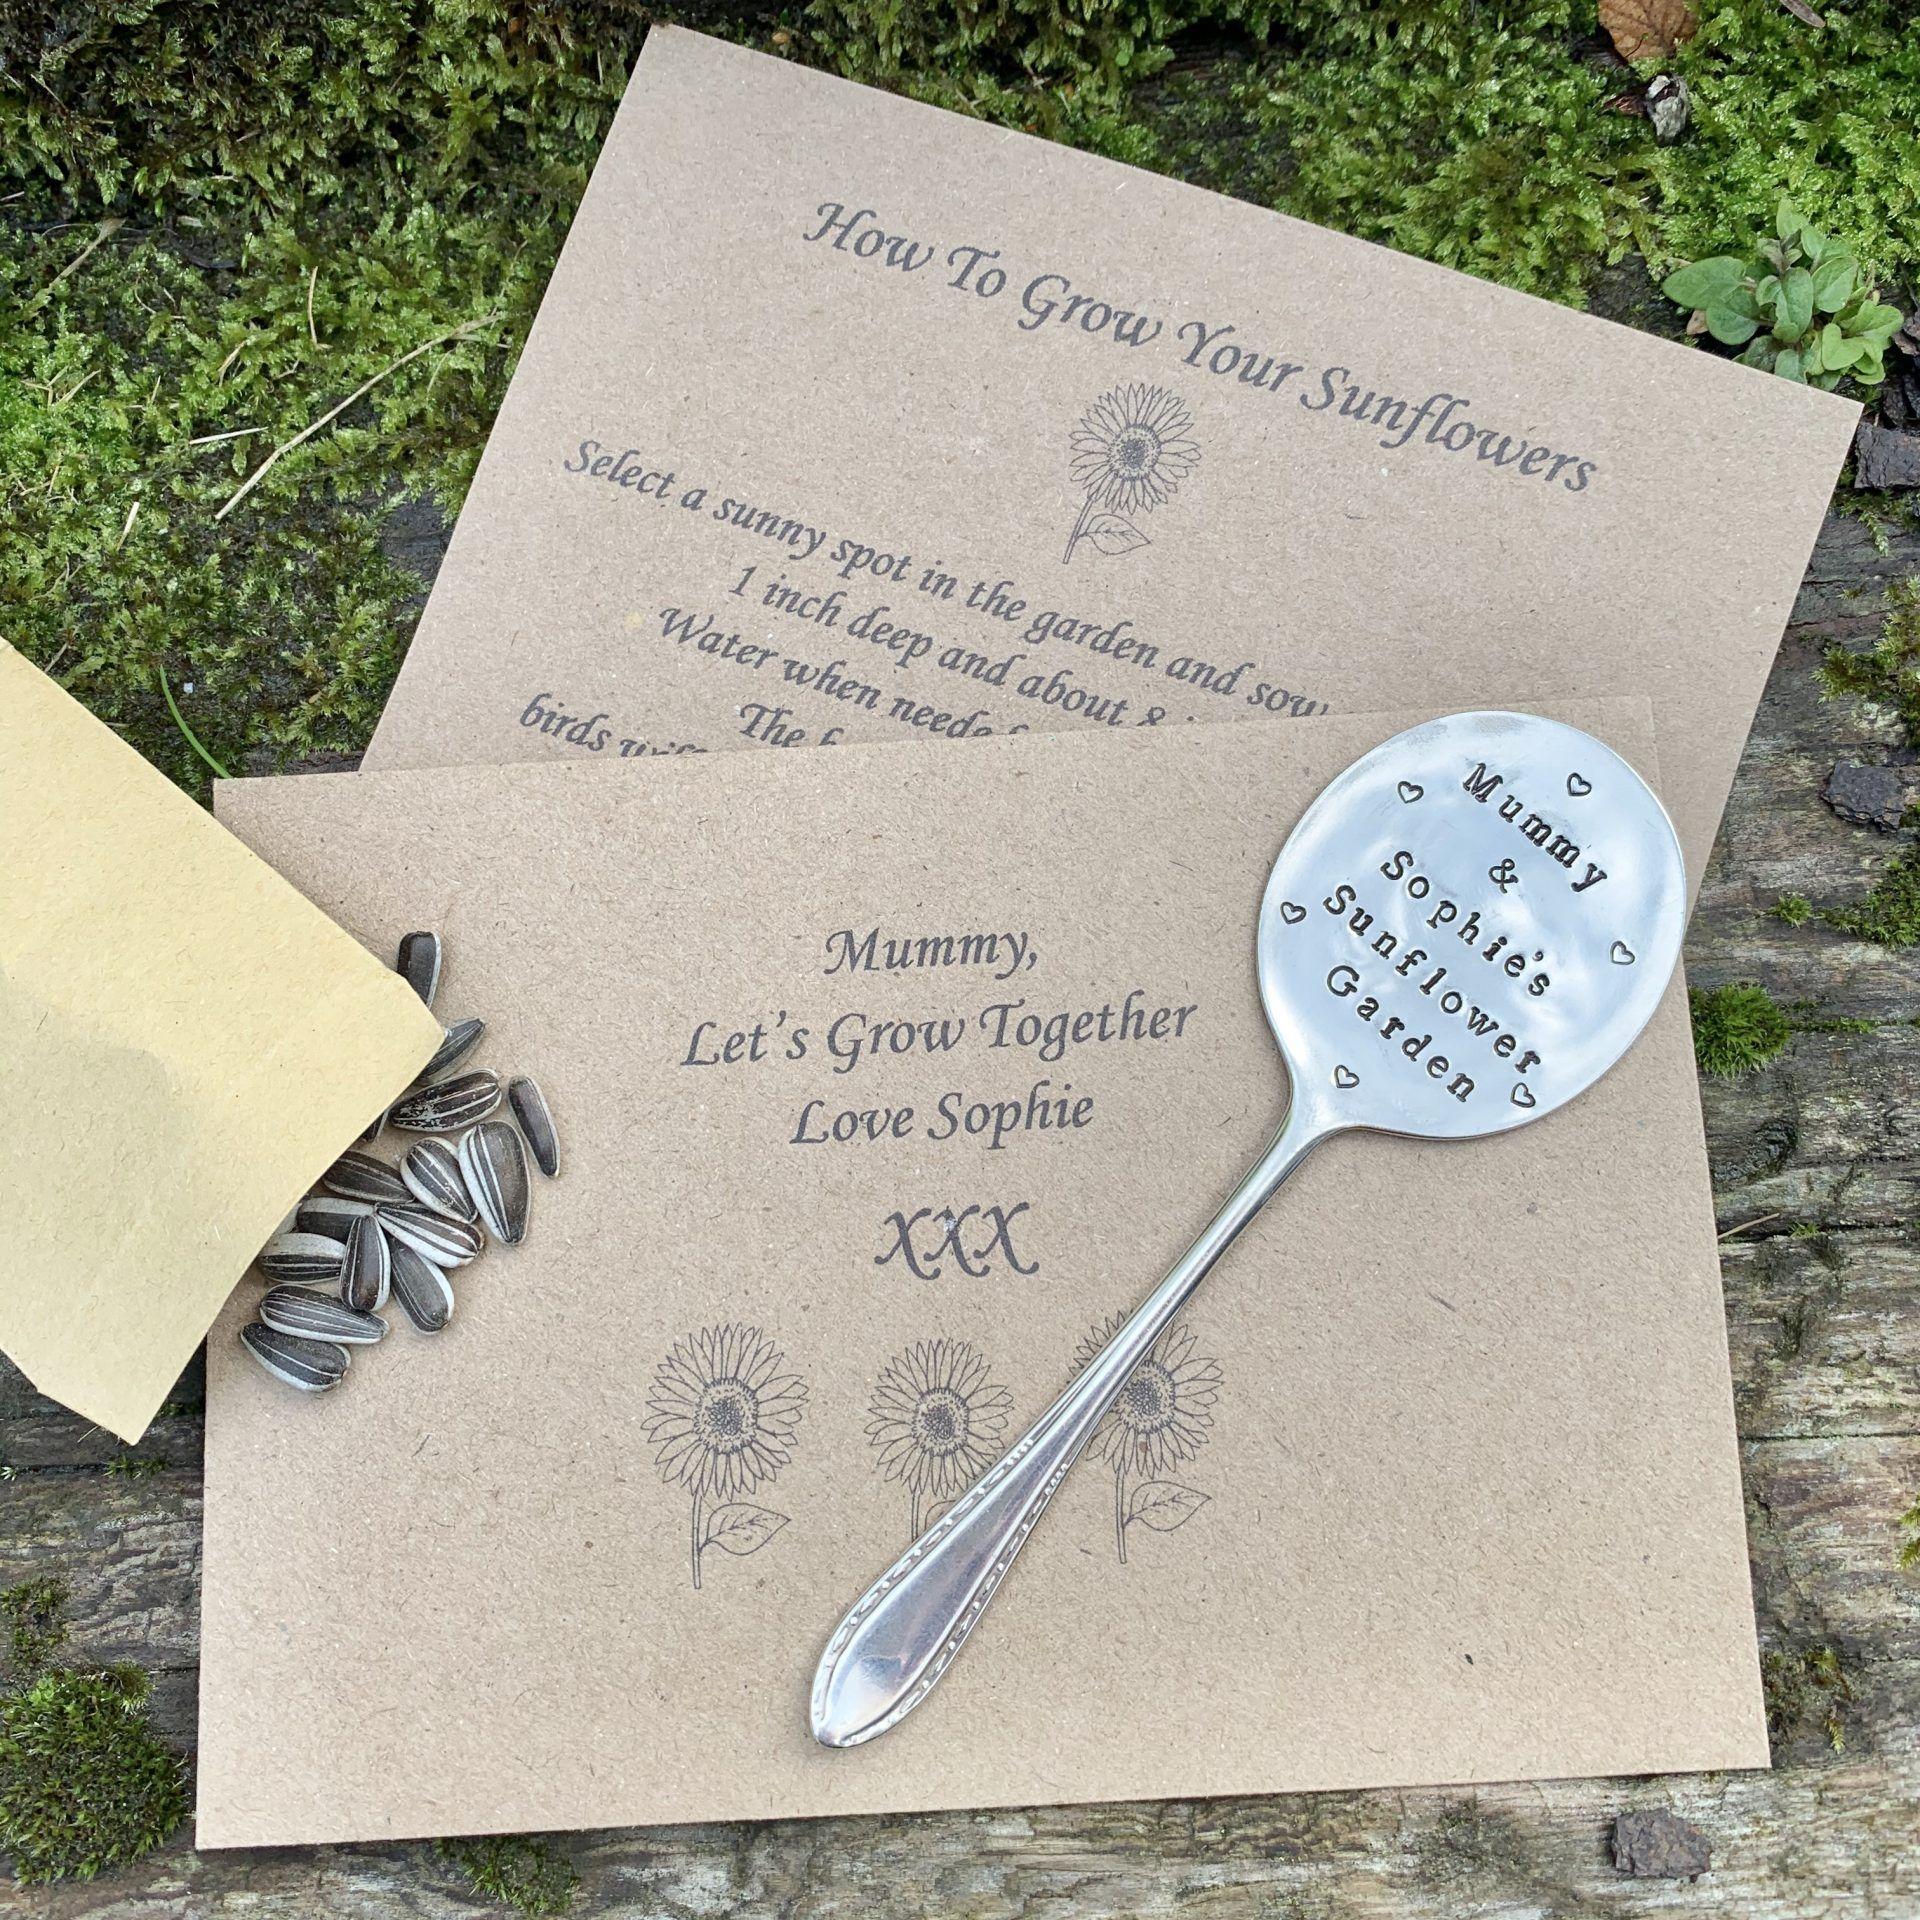 Handstamped spoon on notelets to mum with sunflower seeds to the side